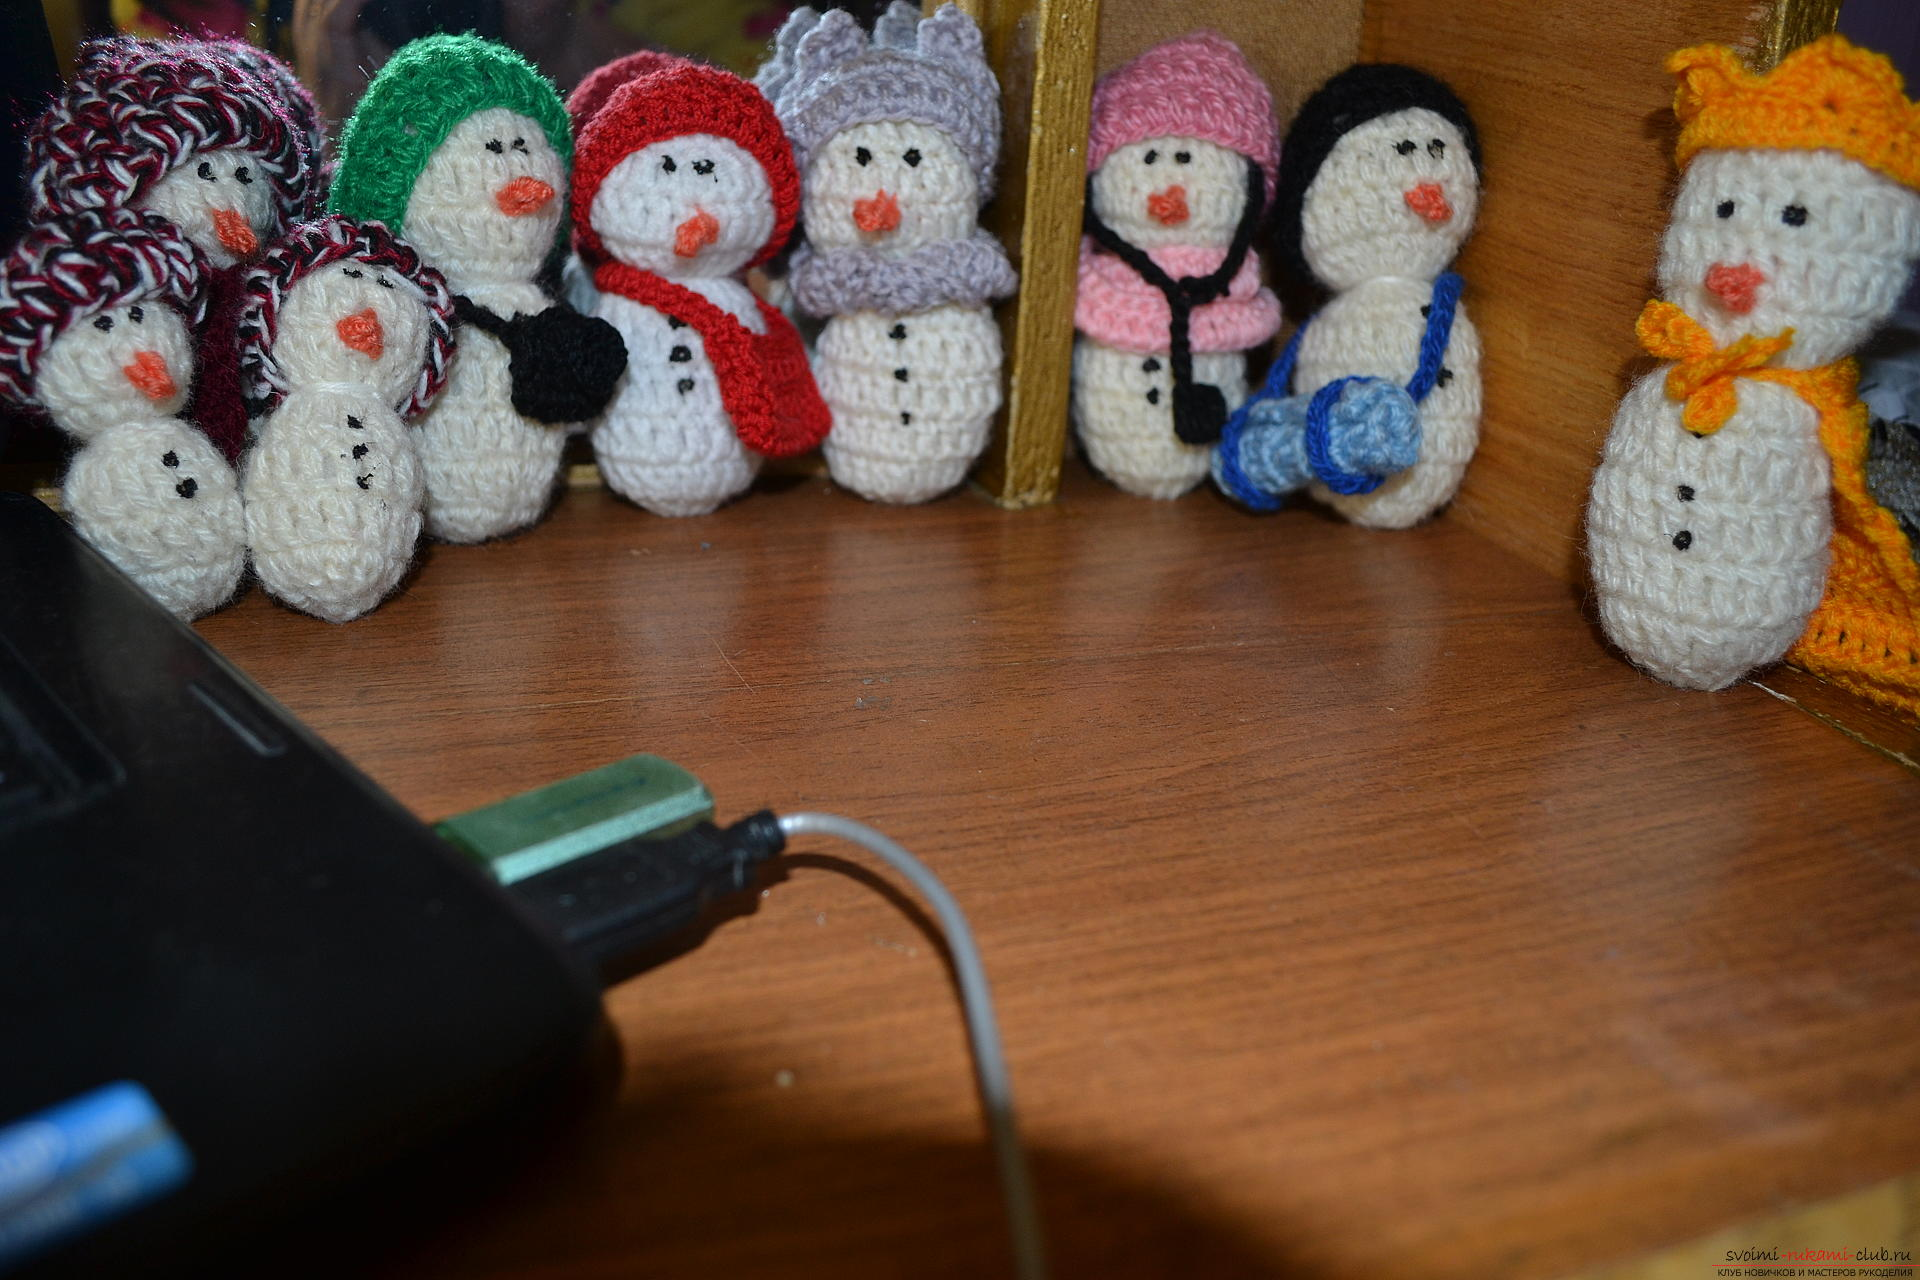 A master class with a photo and description will teach the crocheting of a snowman, which will be understandable for beginners. Photo №1